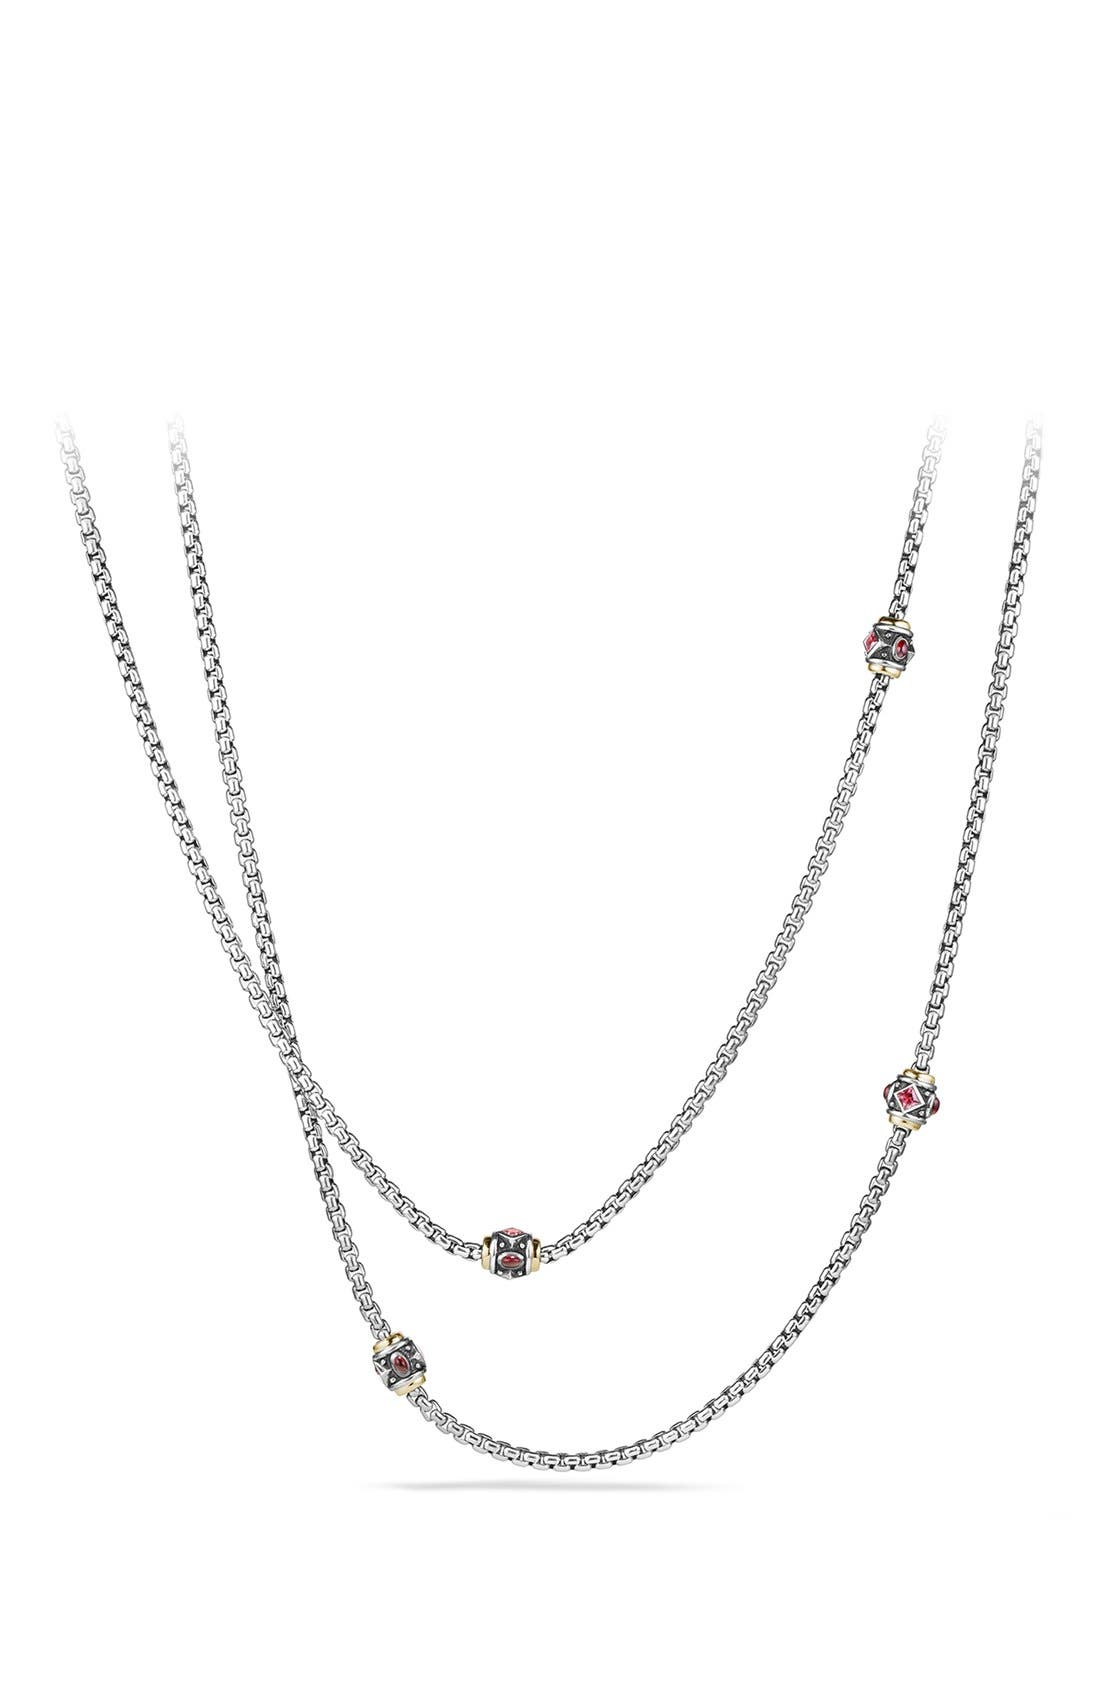 'Renaissance' Necklace with Semiprecious Stone and 18k Gold,                         Main,                         color, Pink Tourmaline